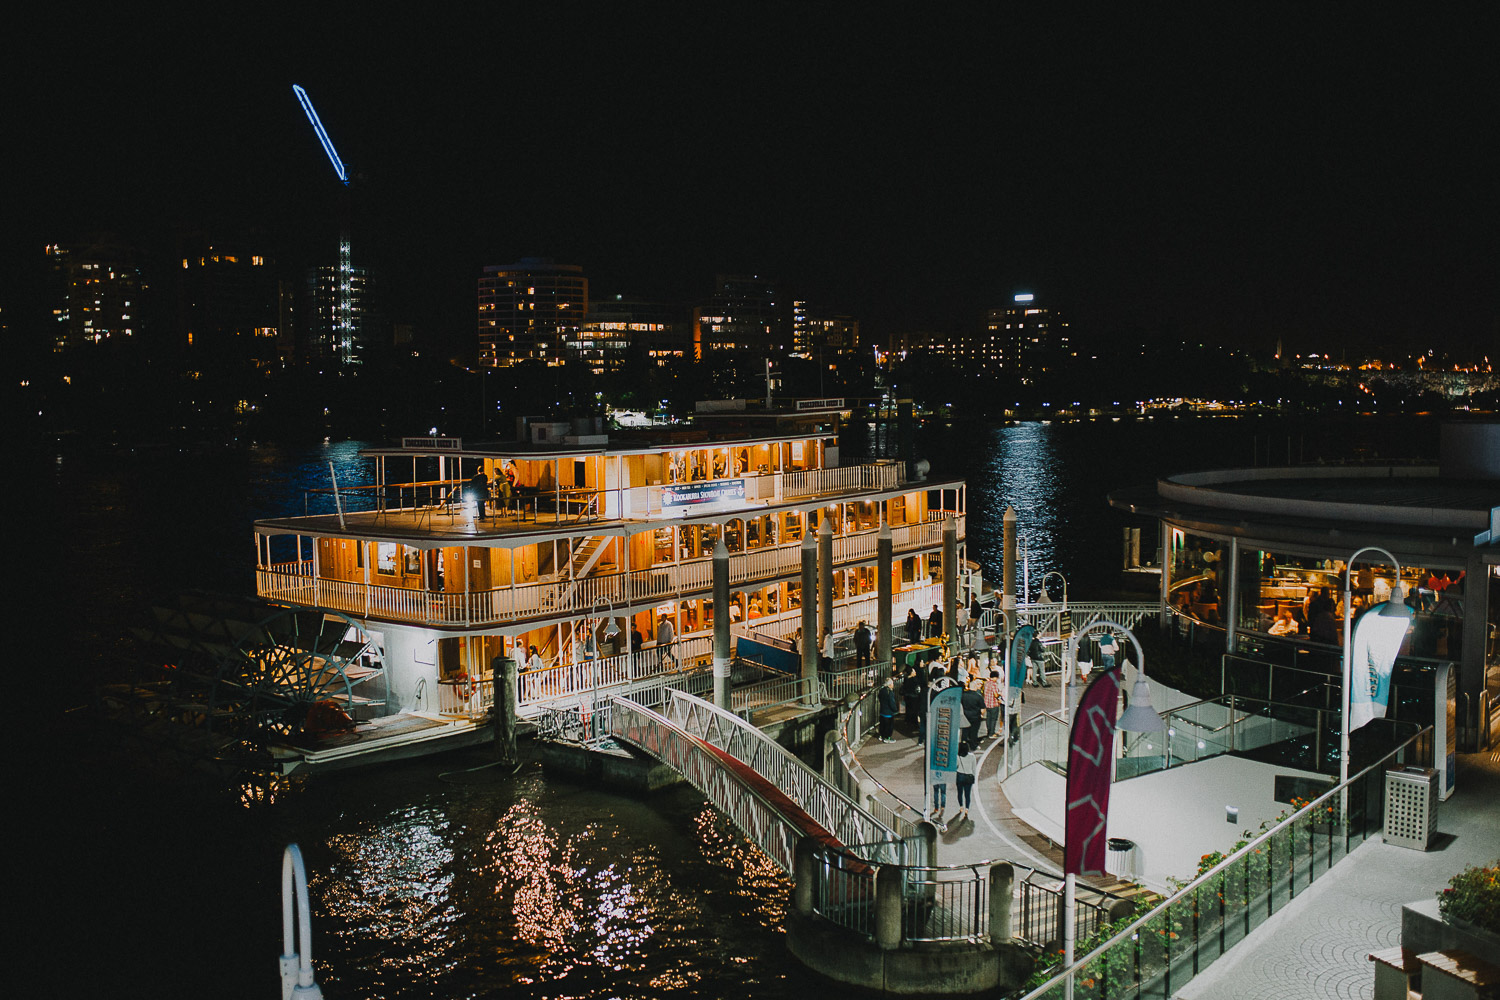 Brisbane waterfront at night